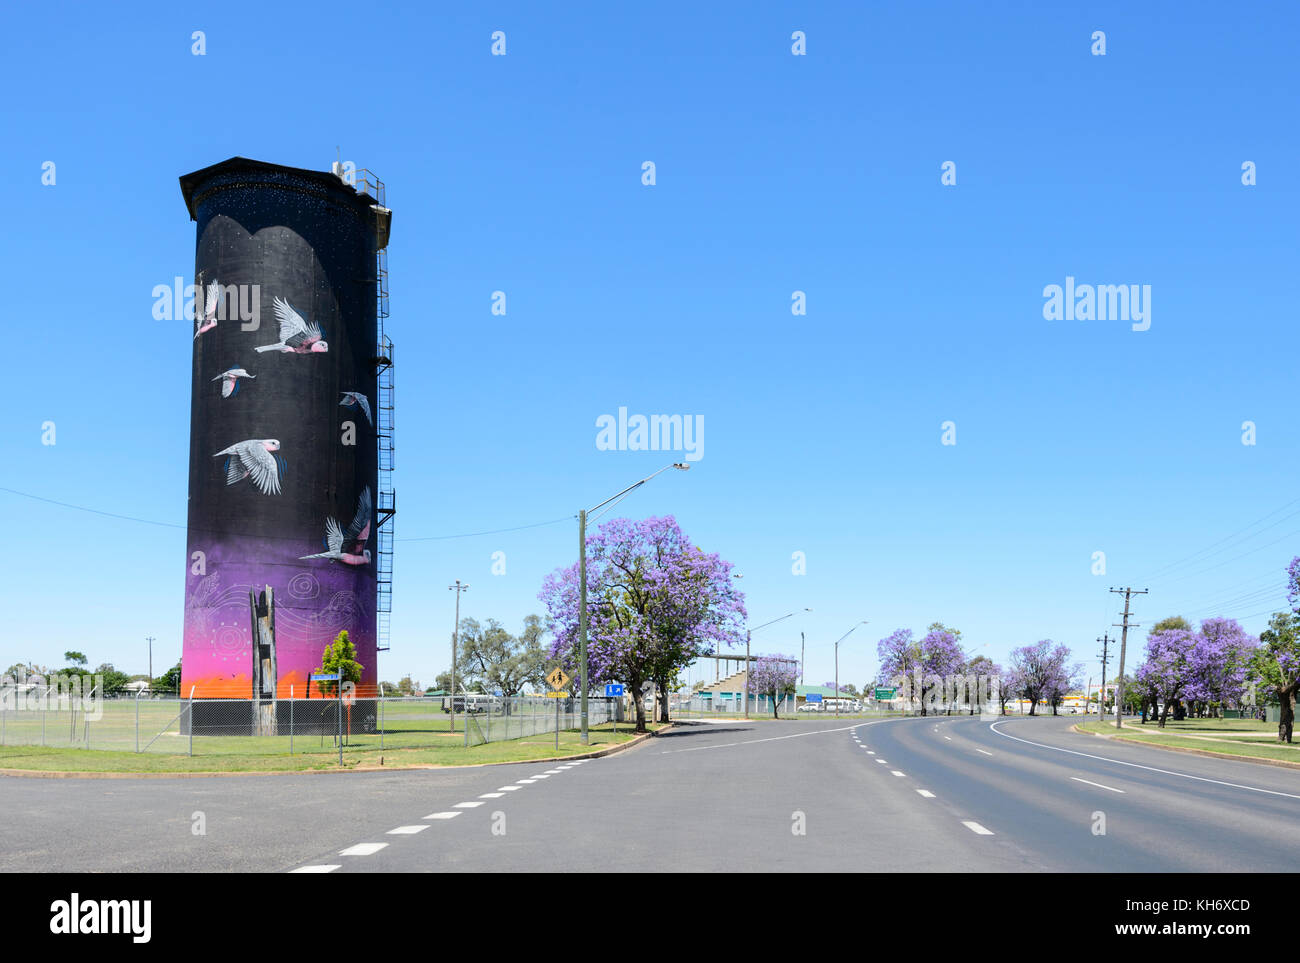 decorated-water-tower-or-silo-art-with-m